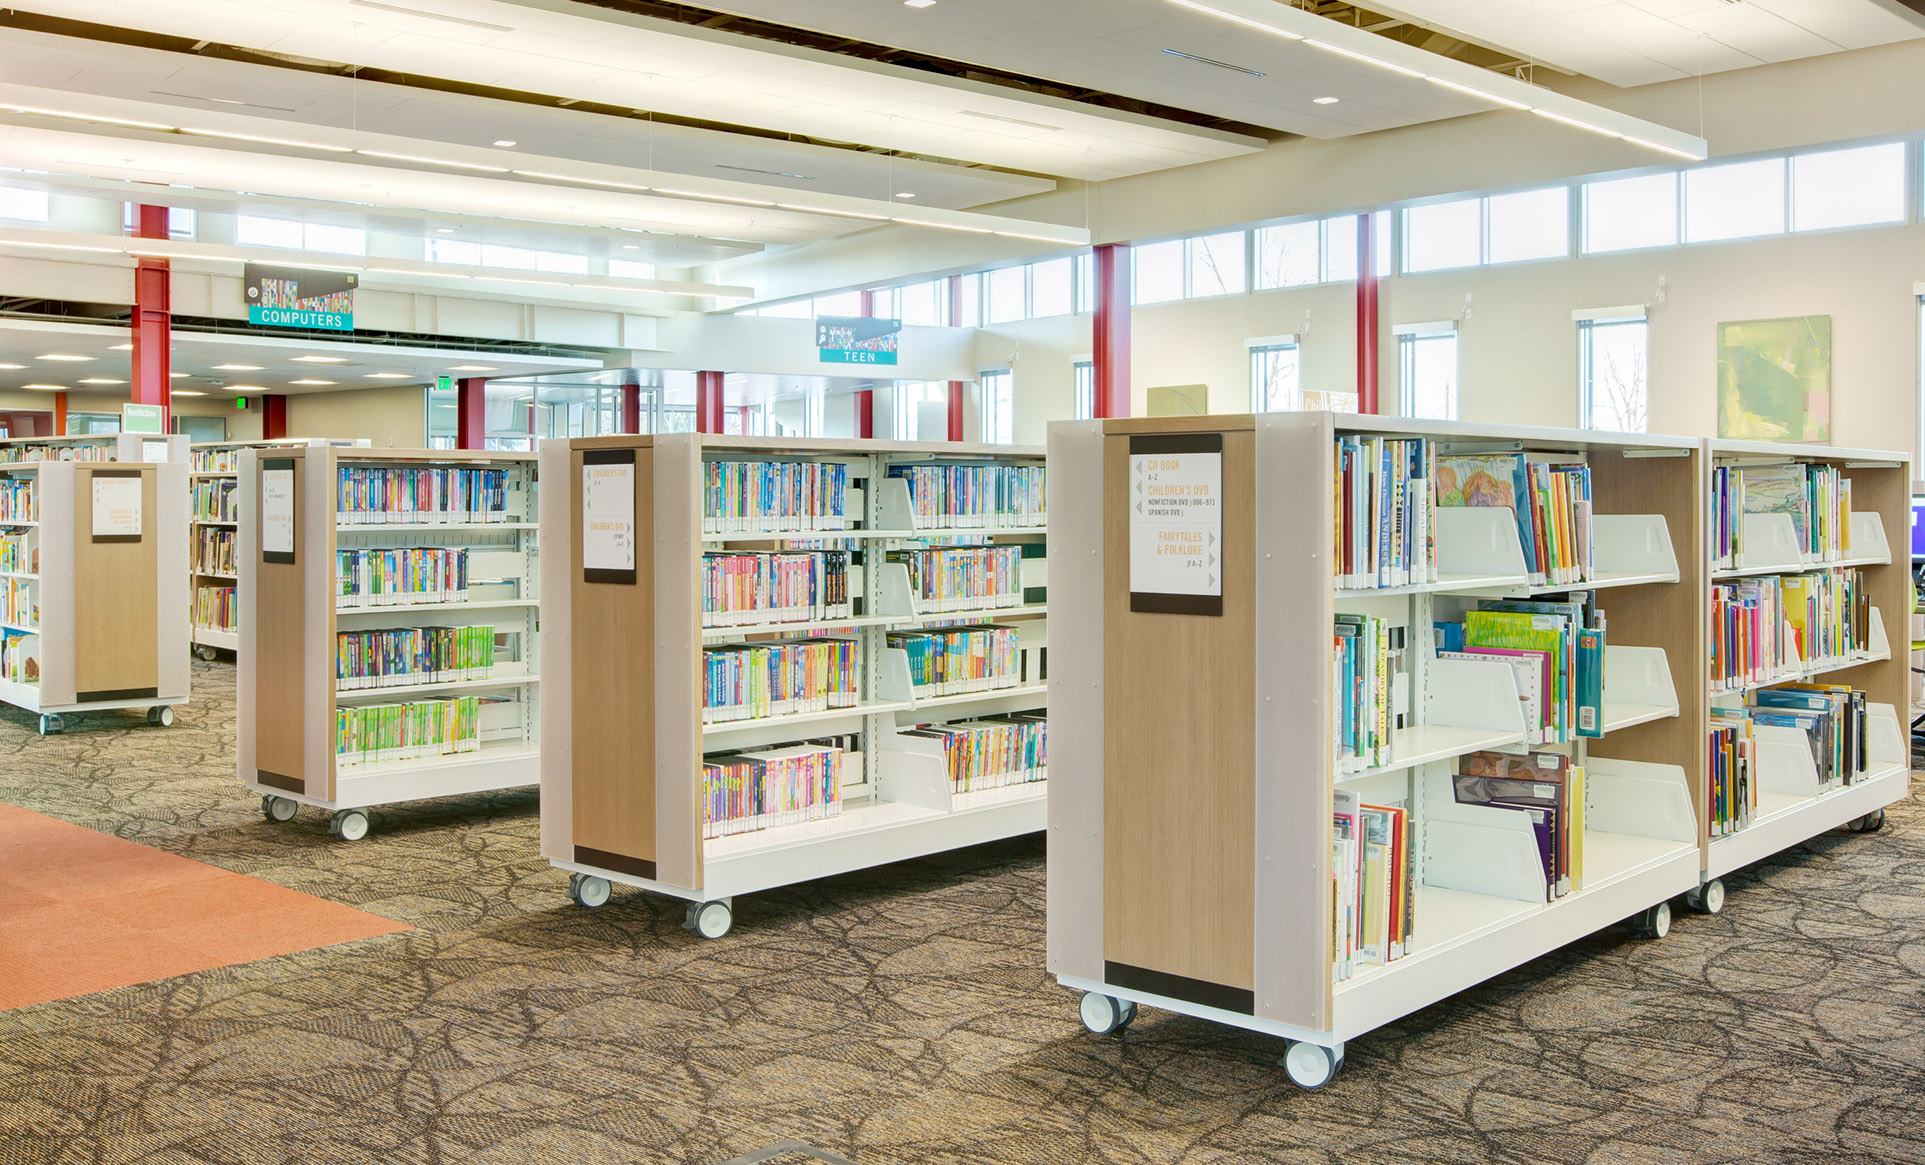 Wheeled shelving, library shelving with wheels, casters on library shelves